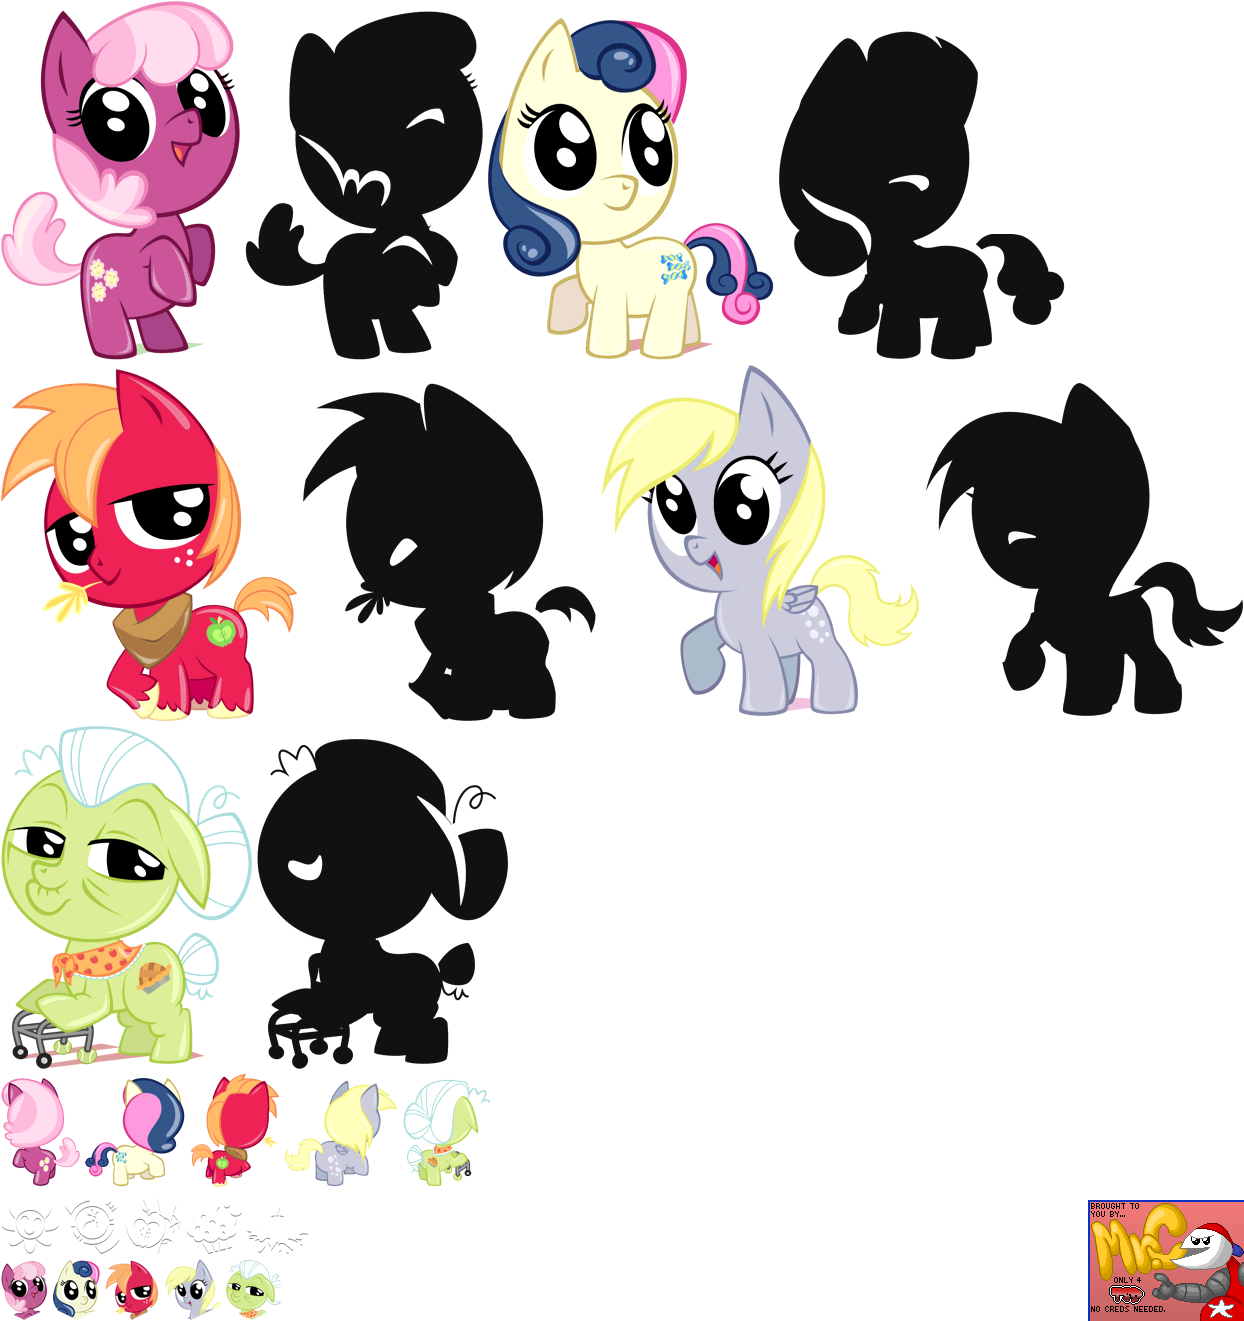 Residents of Ponyville